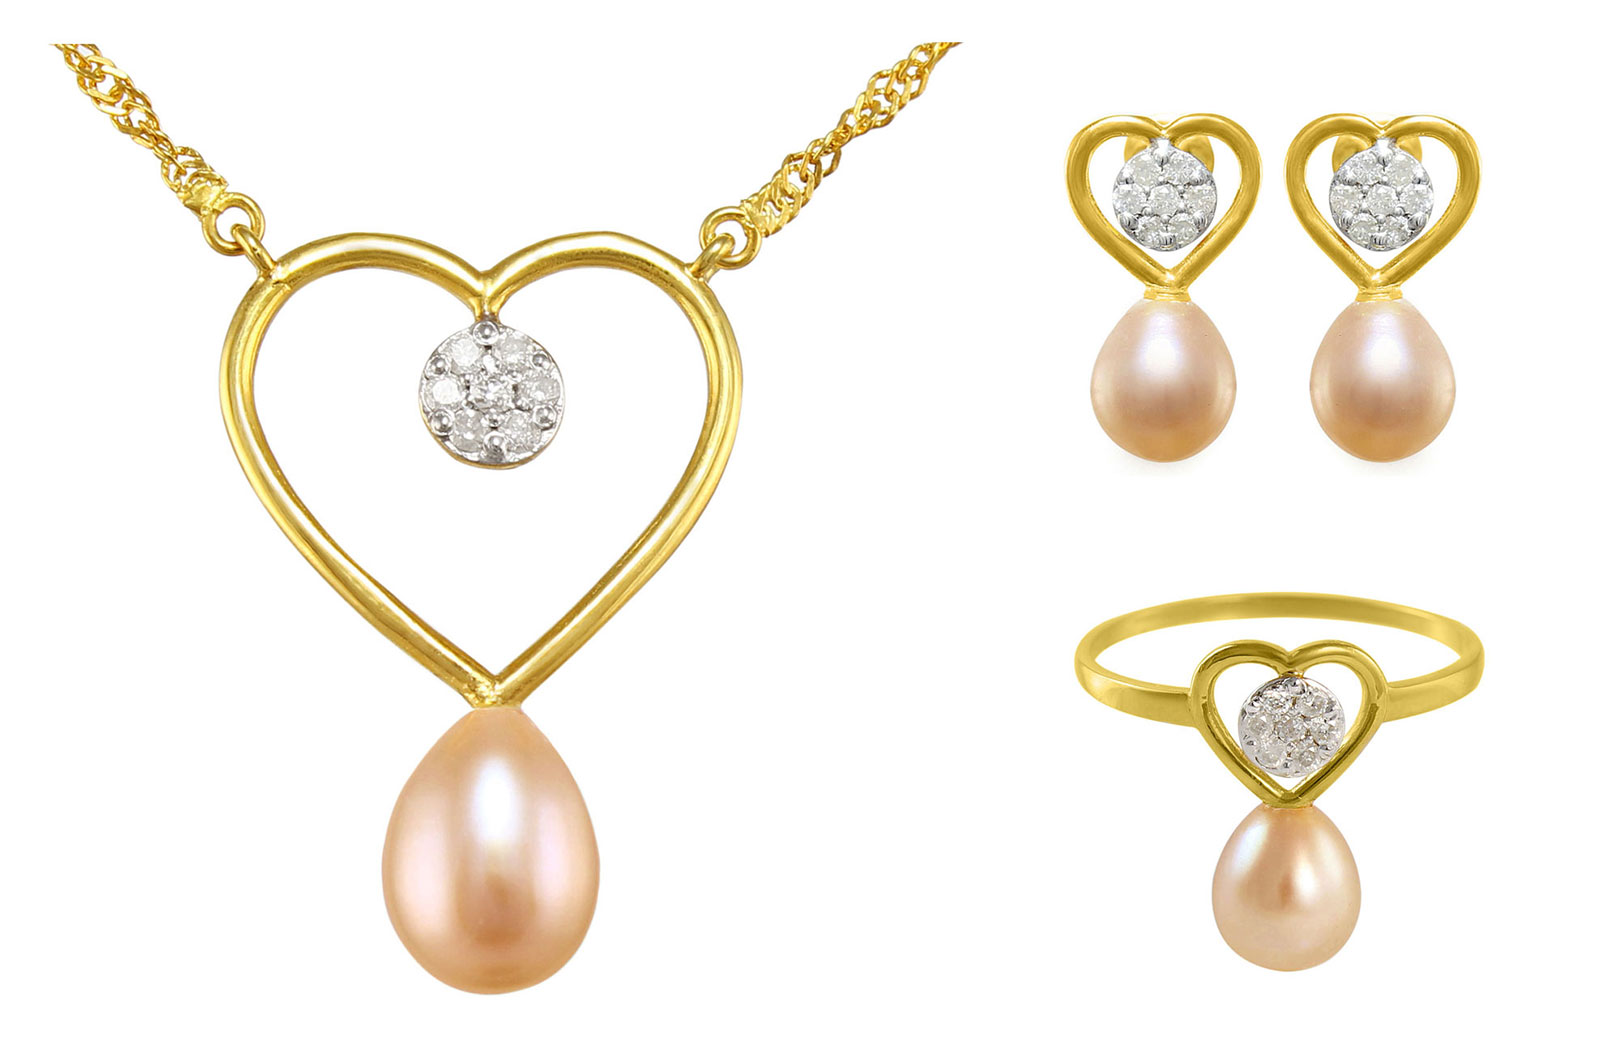 VP Jewels: 18k Solid Gold Diamonds 7mm Pink Pearls Solitaire Heart Earrings, Ring and Necklace Set